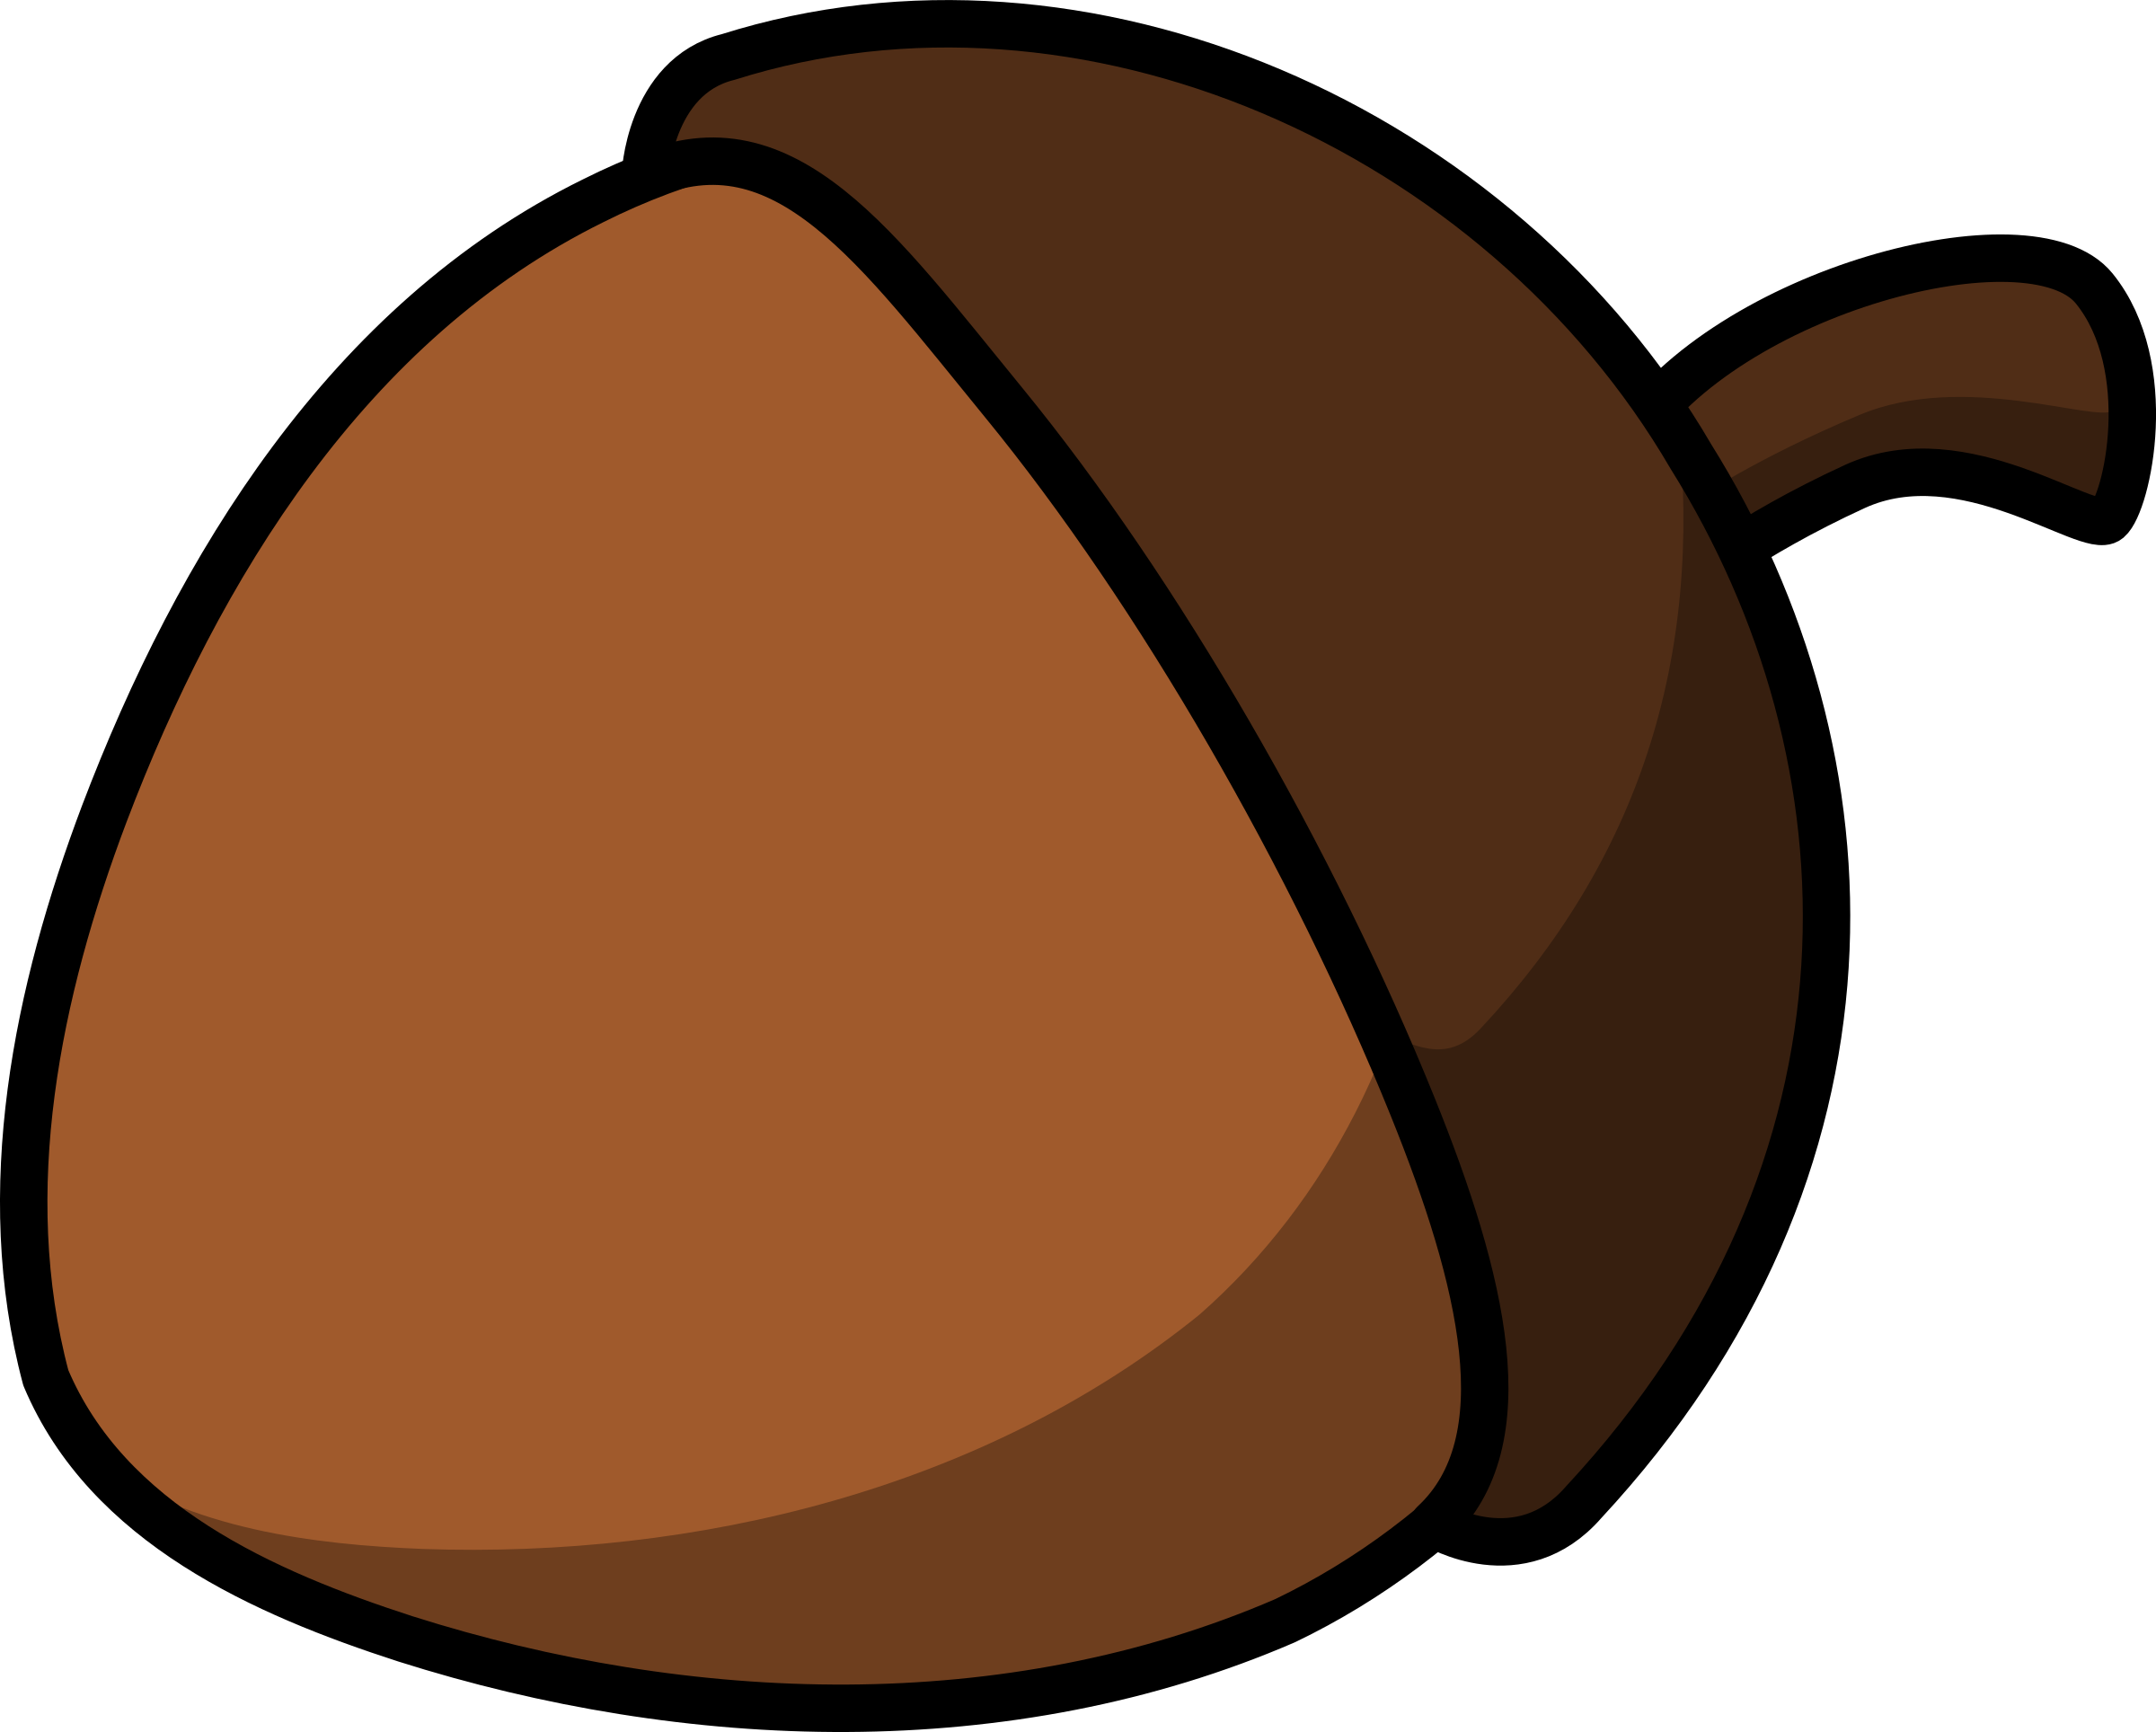 Chestunt clipart cartoon Cartoon Cartoon Clipart acorn acorn